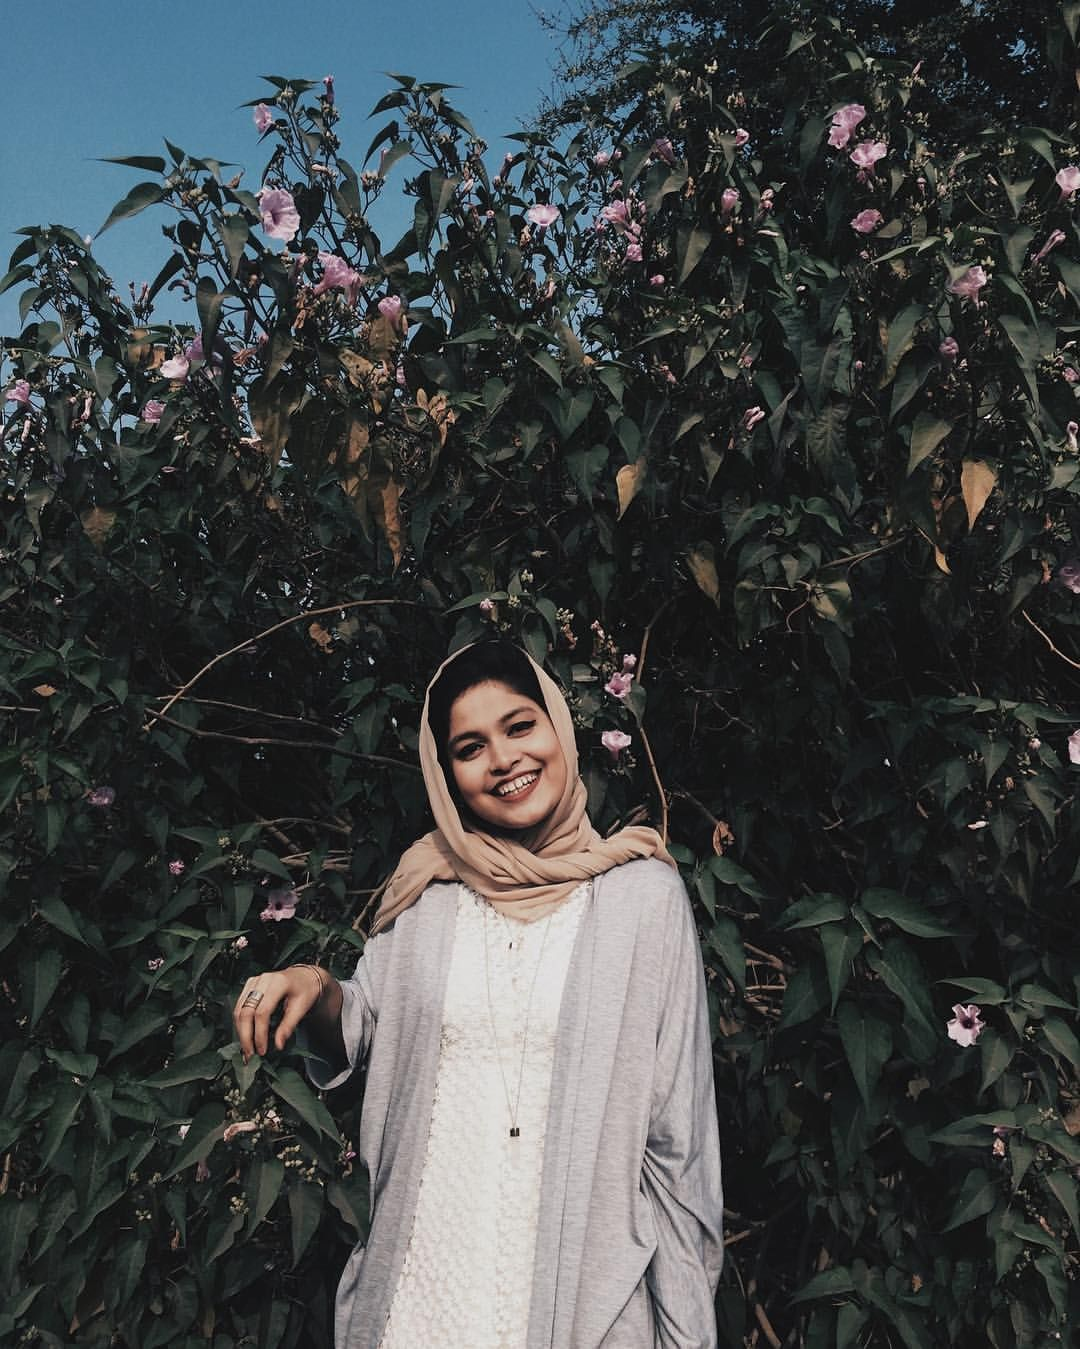 Noor unnahar tumblr photography aesthetics portraits ideas inspiration muslim fashion south asian pakistani mipster modest style dressing hijab